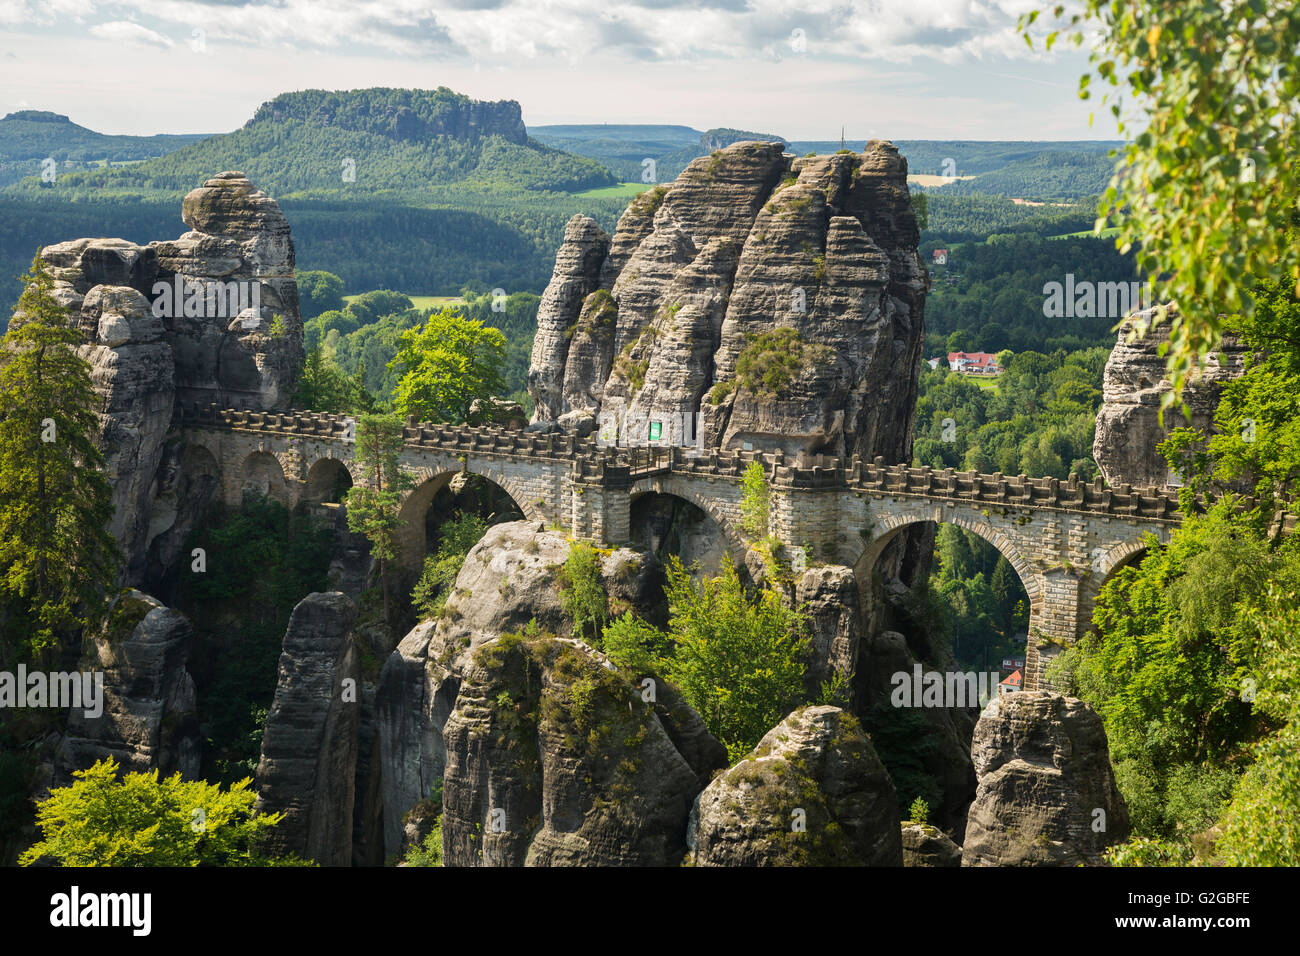 Bastei Bridge Elbe Sandstone Mountains Saxony Germany